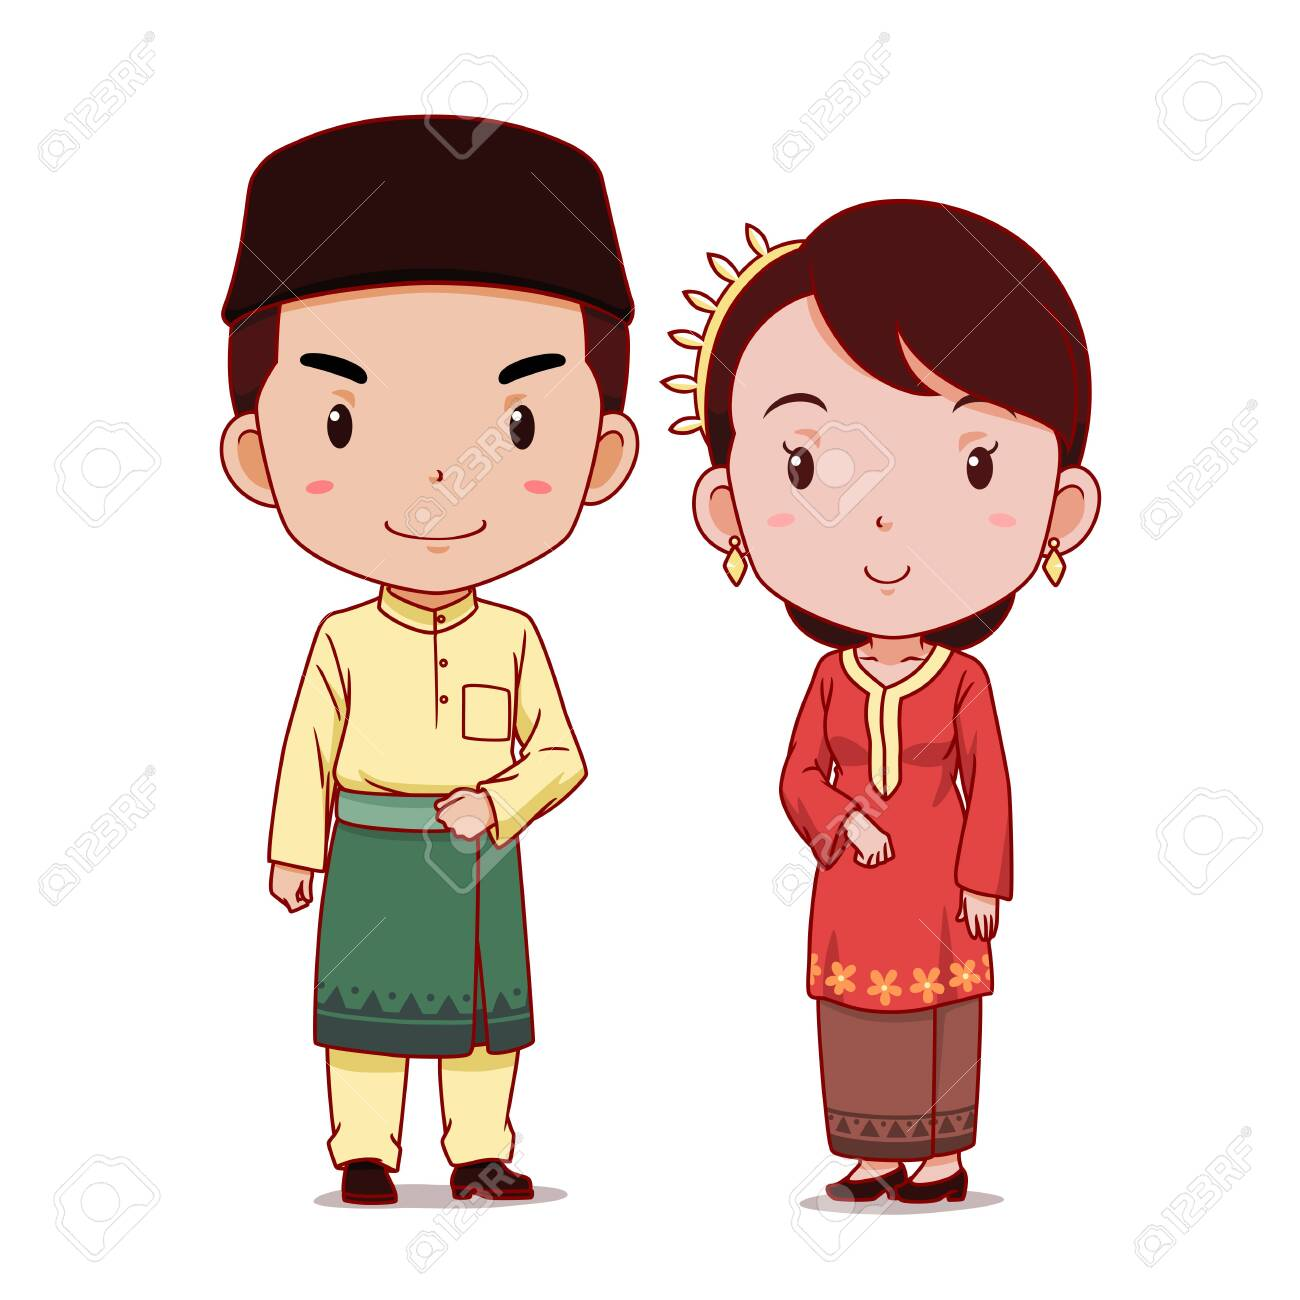 Couple of cartoon characters in Malaysian traditional costume. - 133378840